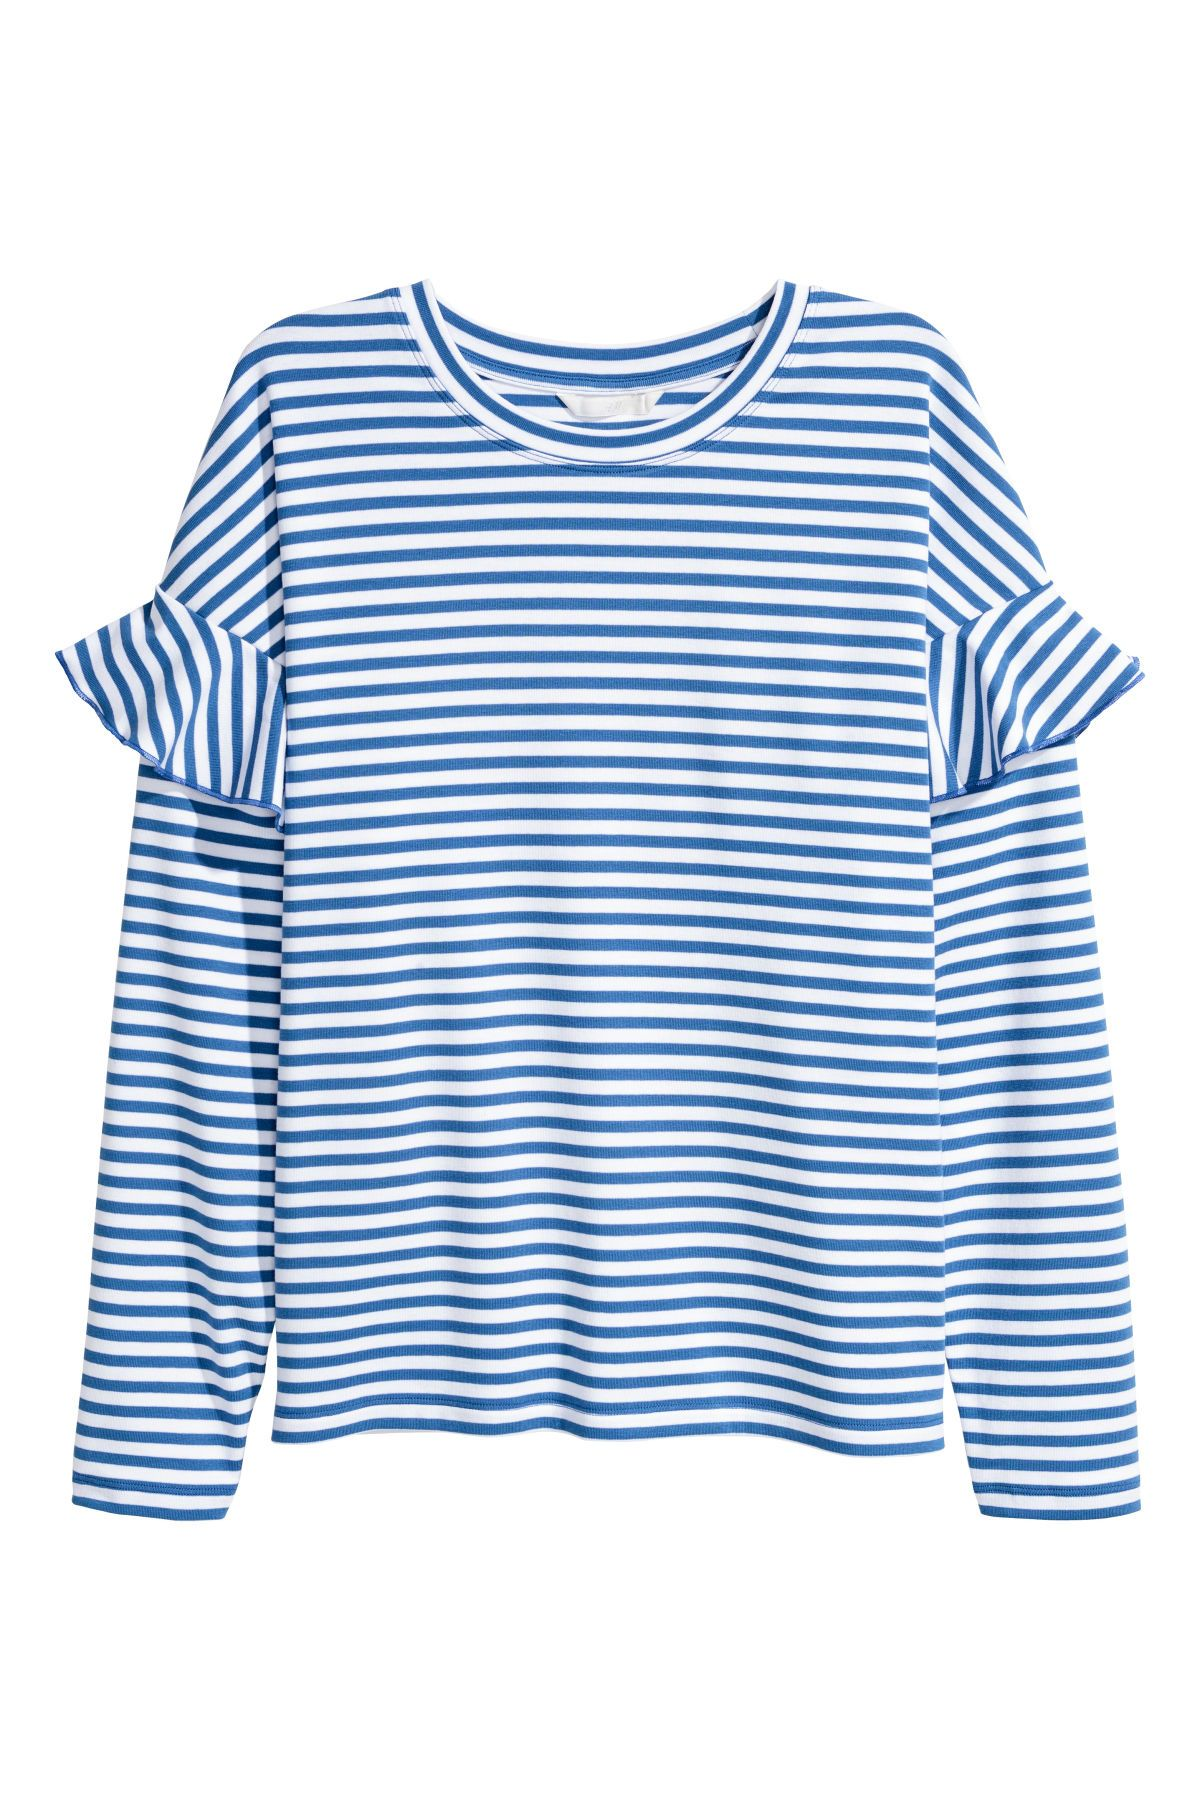 08a09a329118 Blue white striped. Soft jersey top with long sleeves and dropped shoulders  with a ruffle.